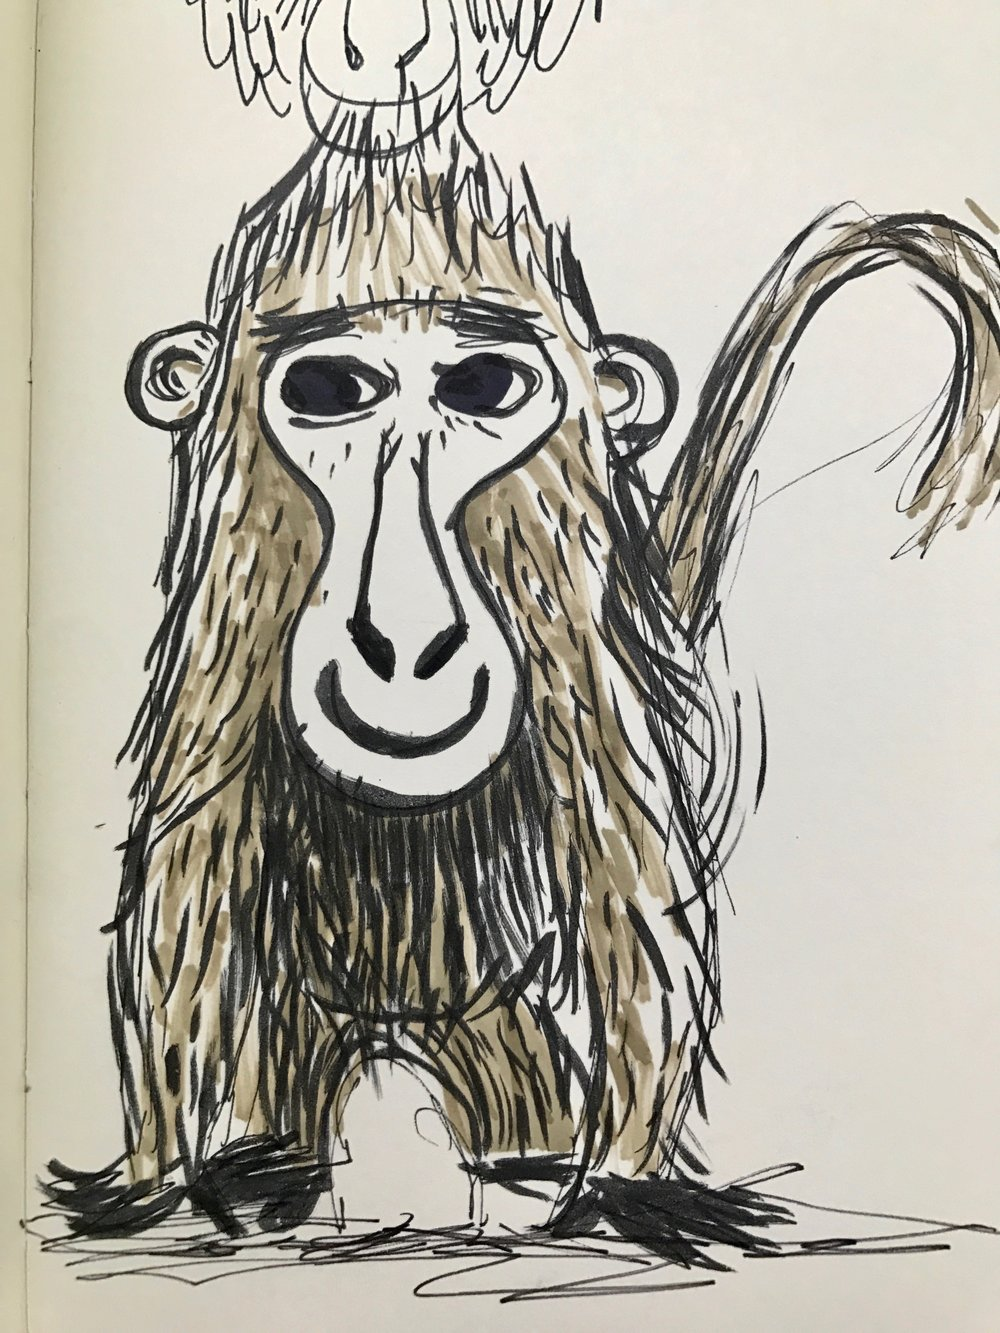 One of the first Monkey development sketches I created in working on this book.